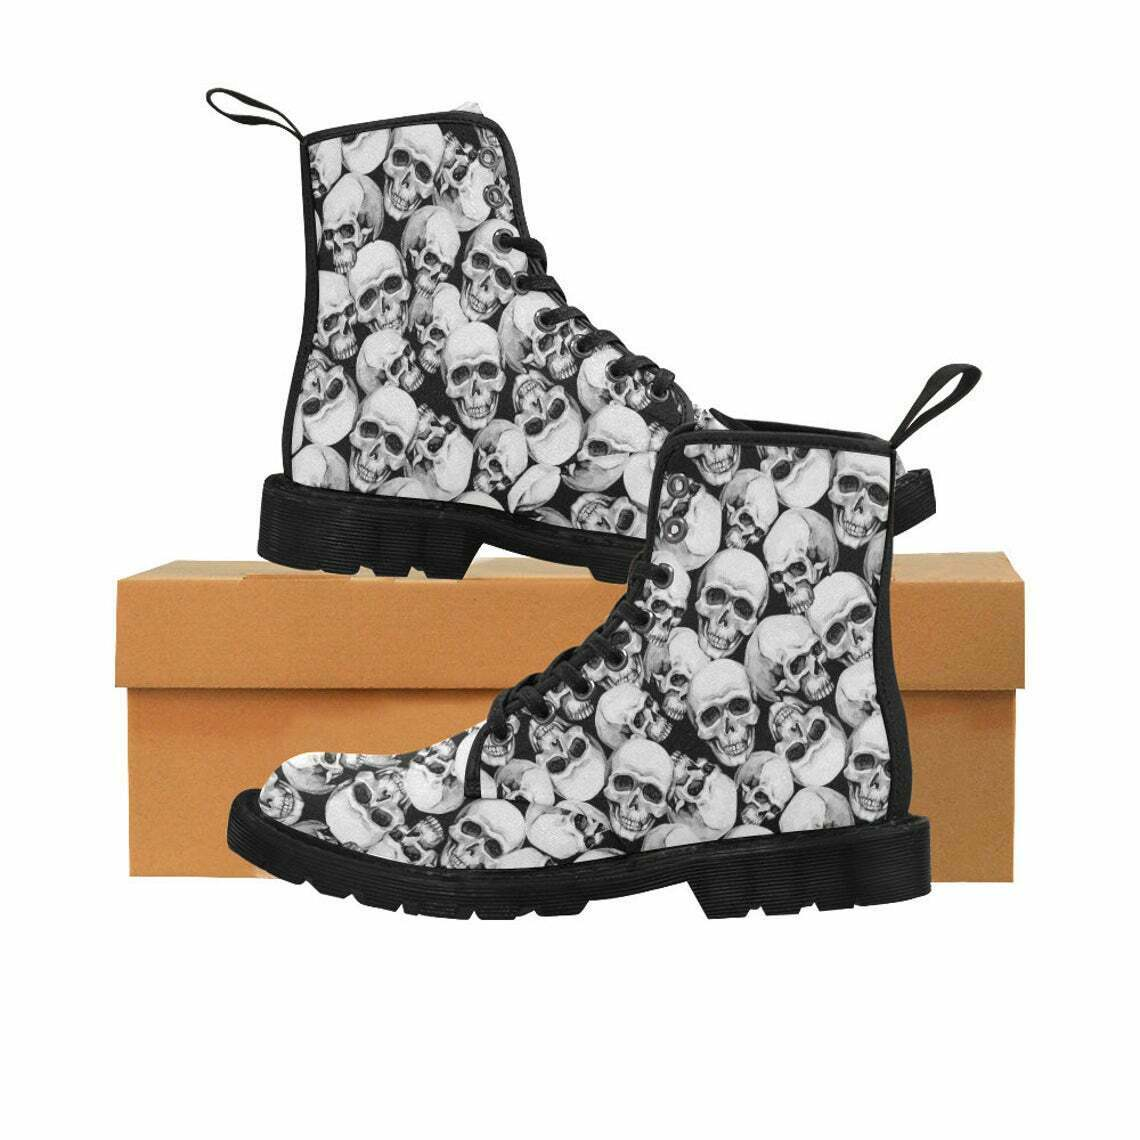 Men's Monochrome skull canvas combat boots, goth boots, punk boots, skull gifts